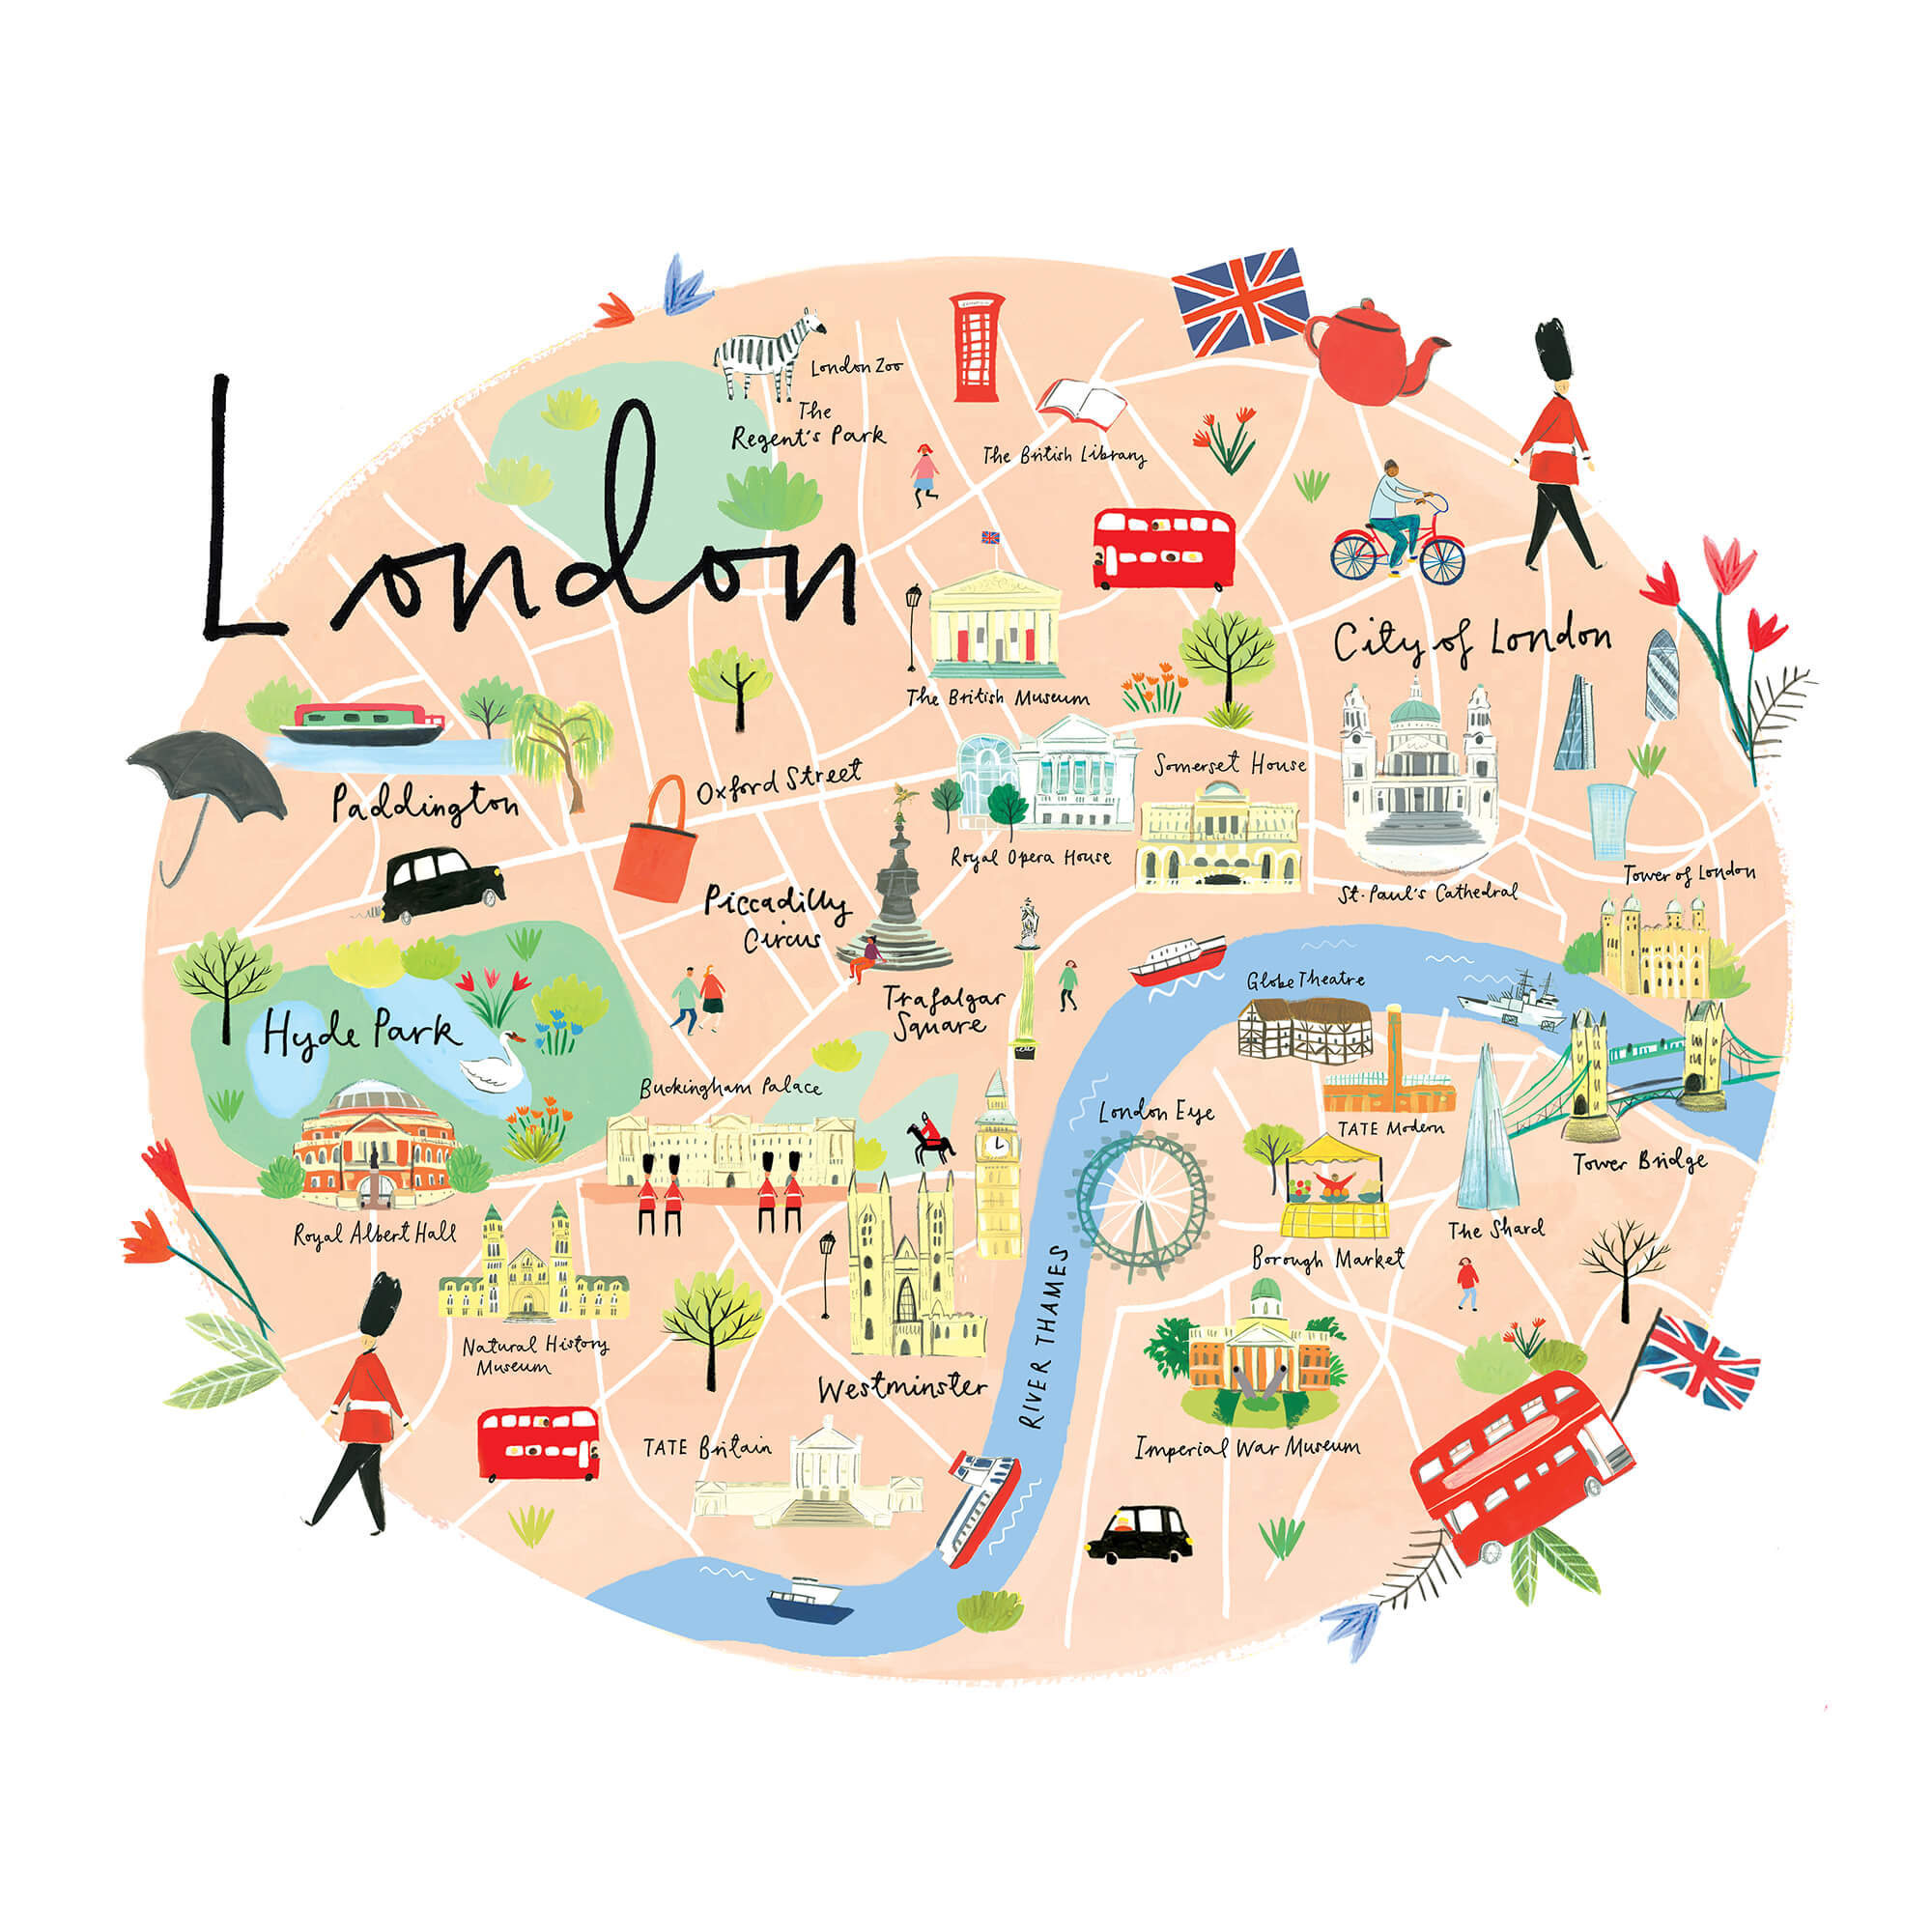 the map of london London Map Art Print By Clair Rossiter Whistlefish